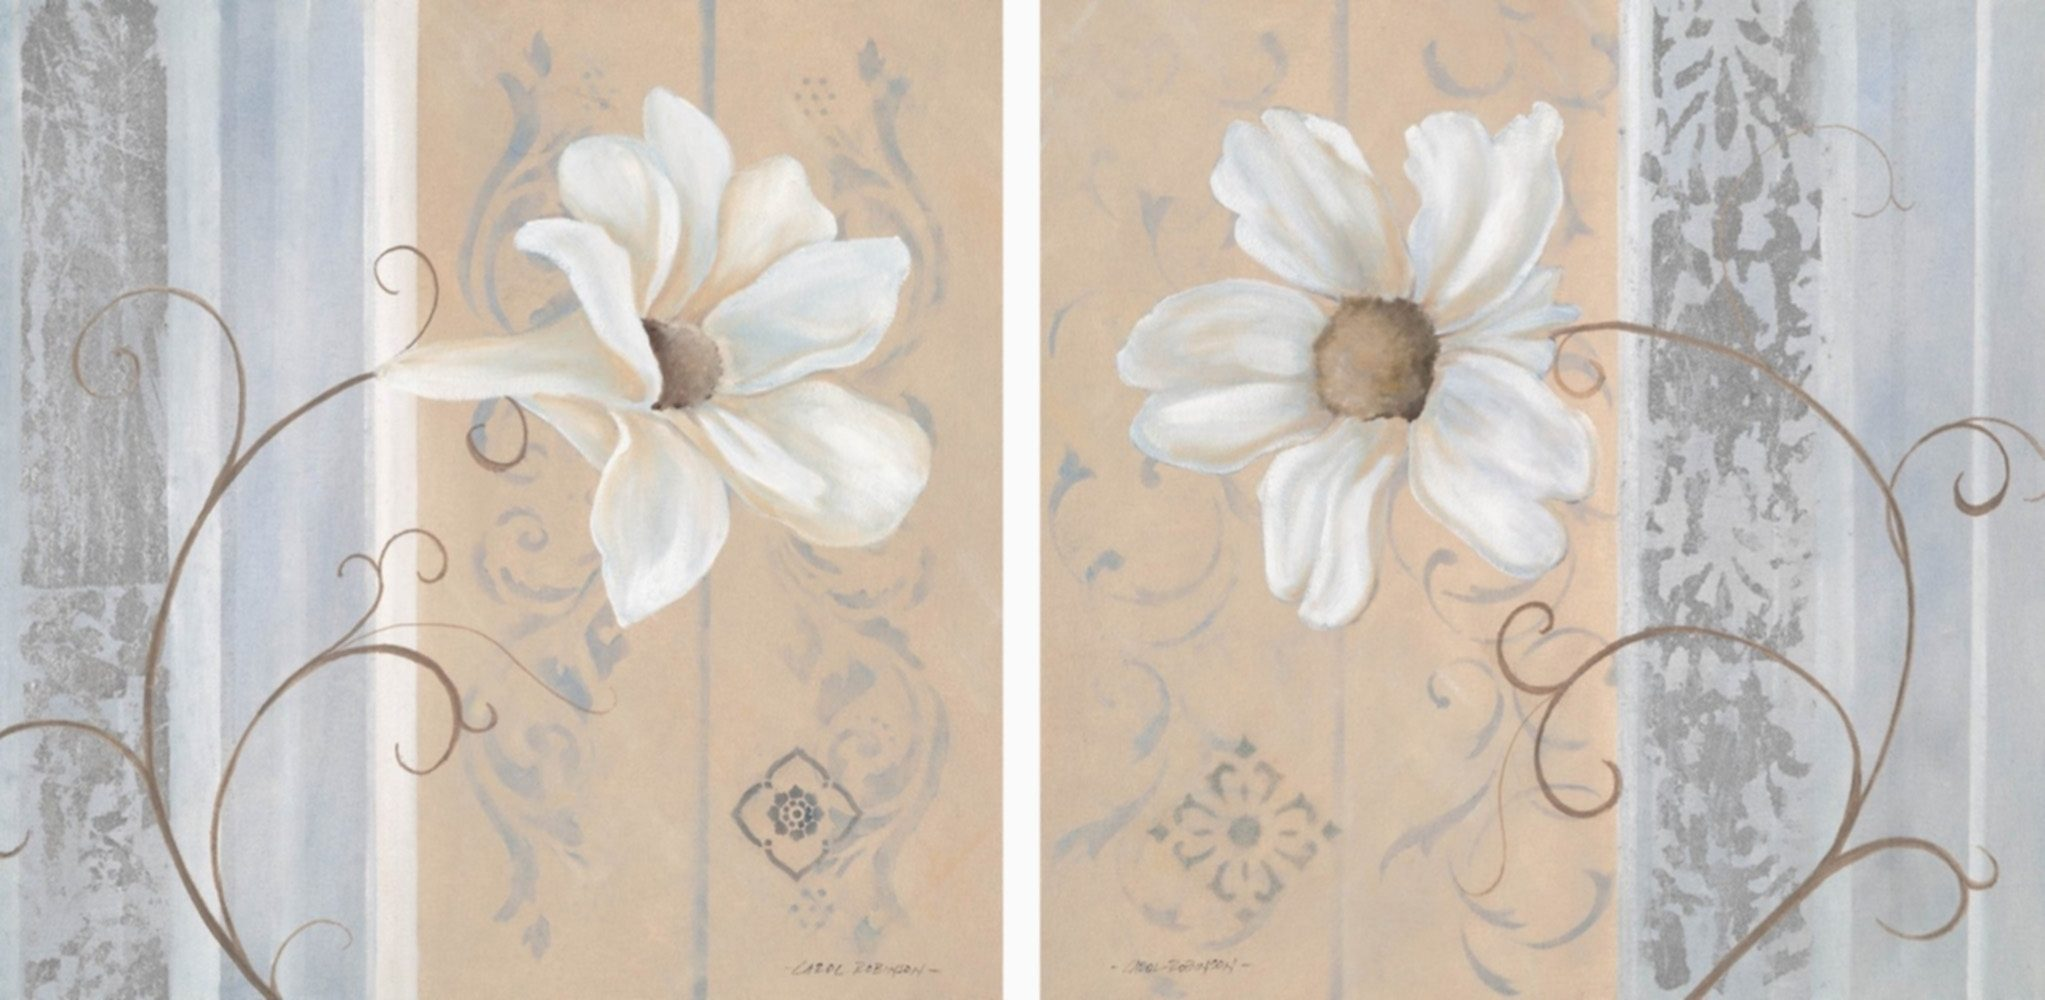 Home Affaire Bild Kunstdruck »White Flowers I/II«, (2-tlg.)